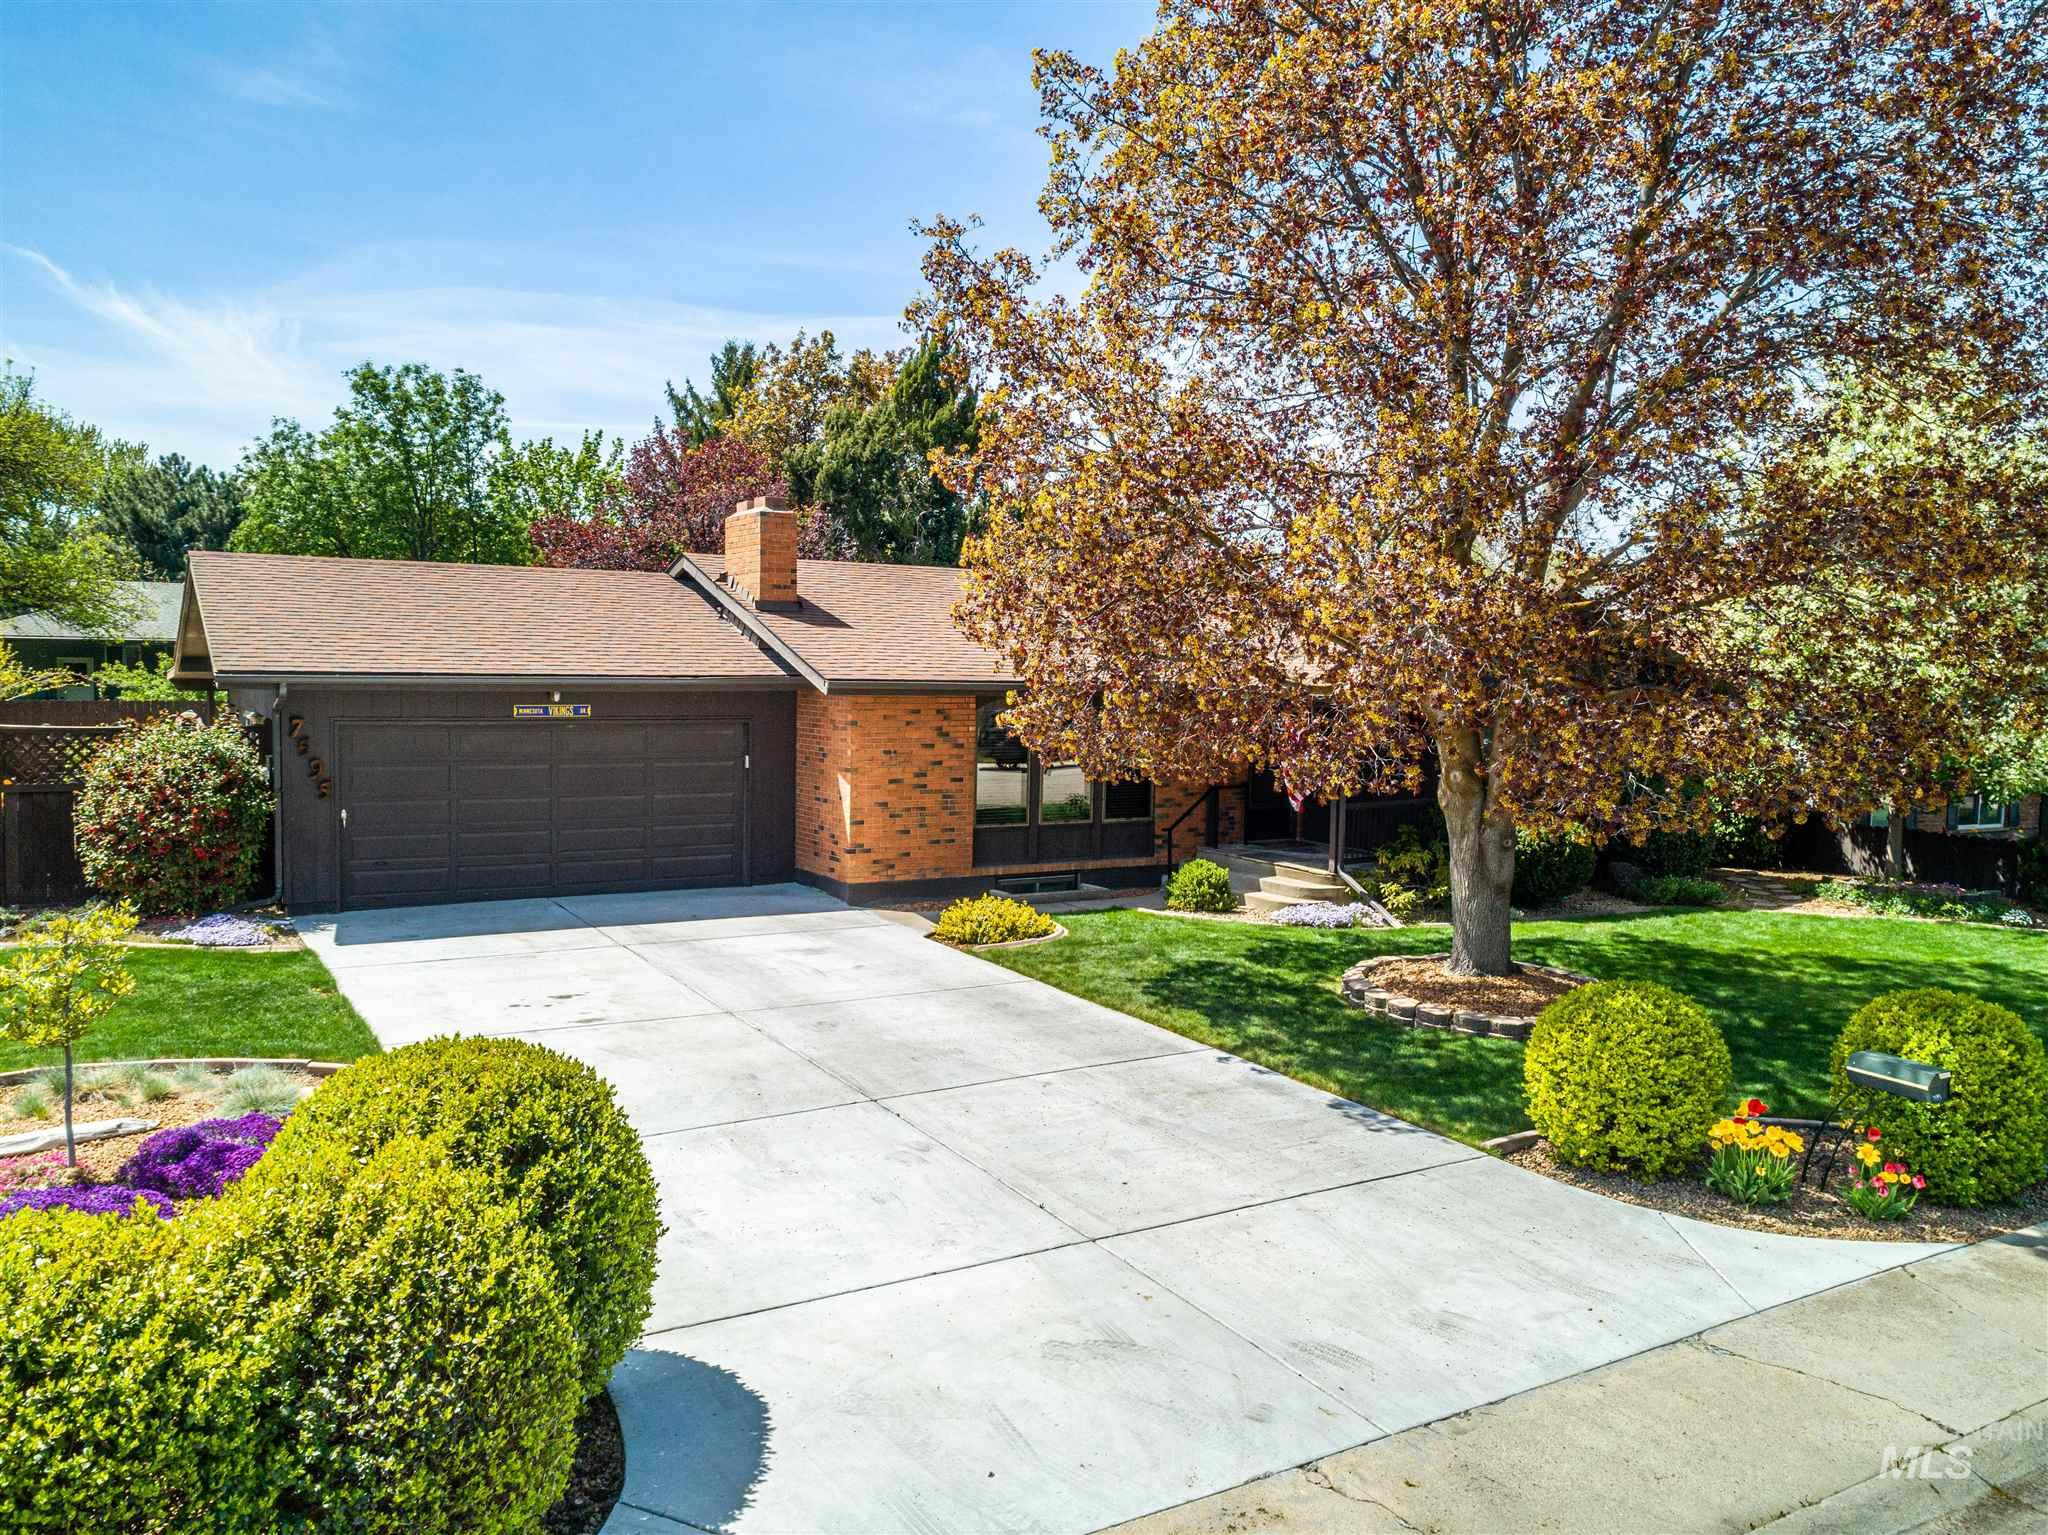 7595 W MANORWOOD DR Property Photo - Boise, ID real estate listing